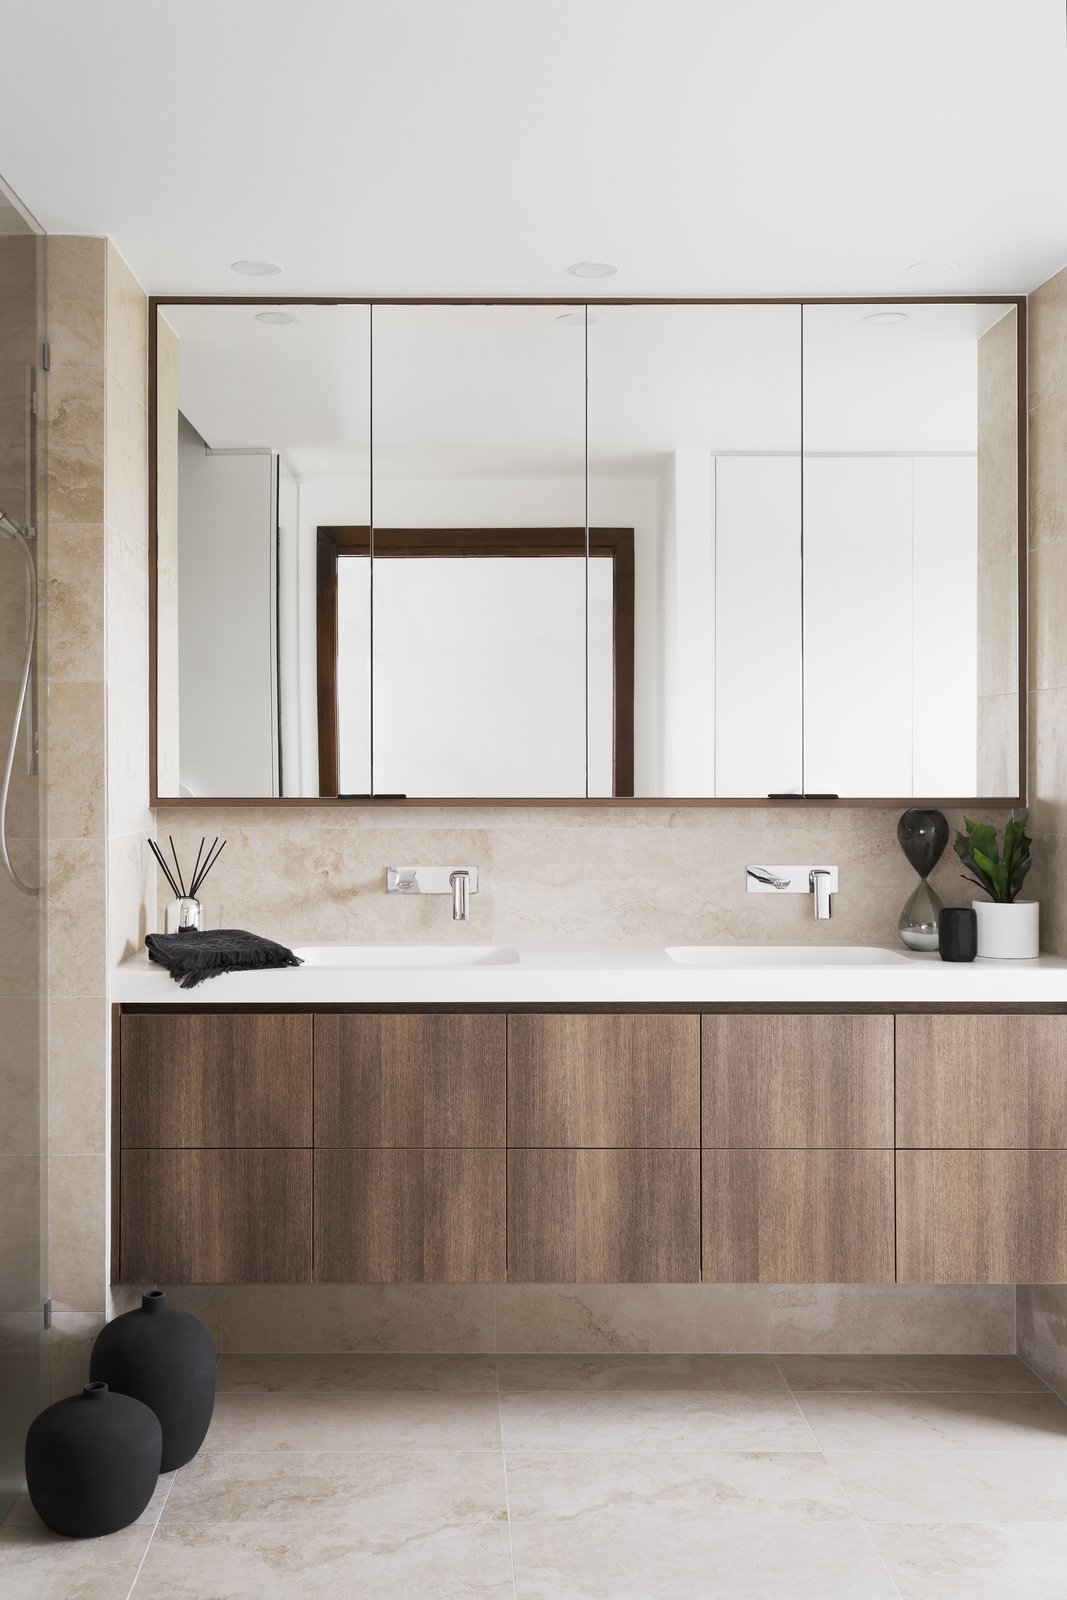 Bath, Undermount, Engineered Quartz, Porcelain Tile, and Porcelain Tile  Best Bath Undermount Porcelain Tile Photos from 6 Insider Tips For Bathroom Design From the Experts